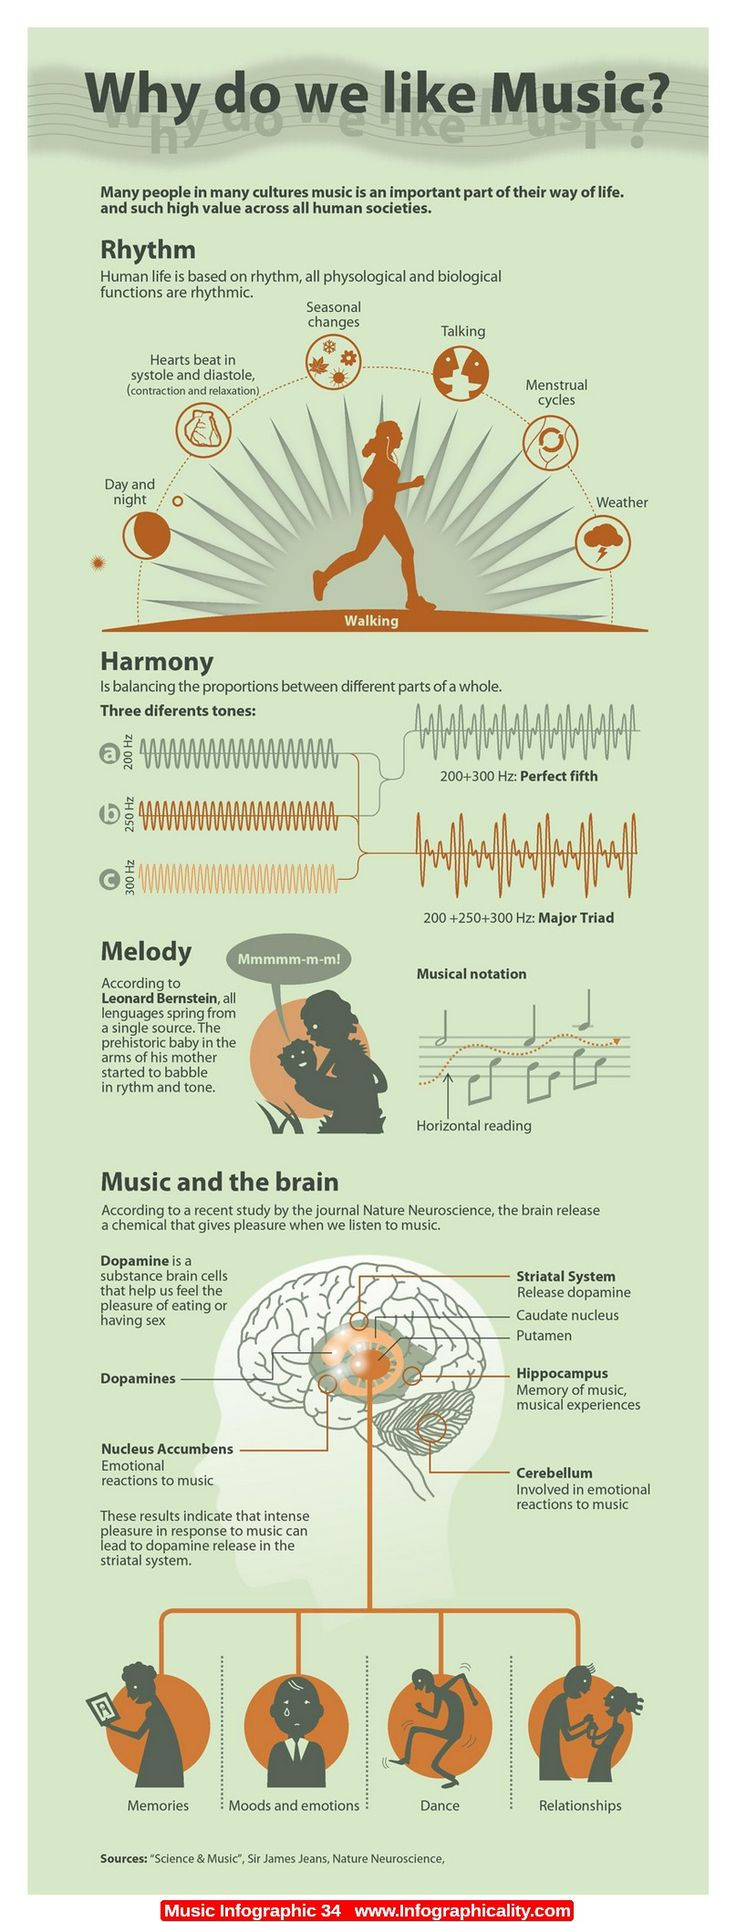 Music Infographic 34 - http://infographicality.com/music-infographic-34/